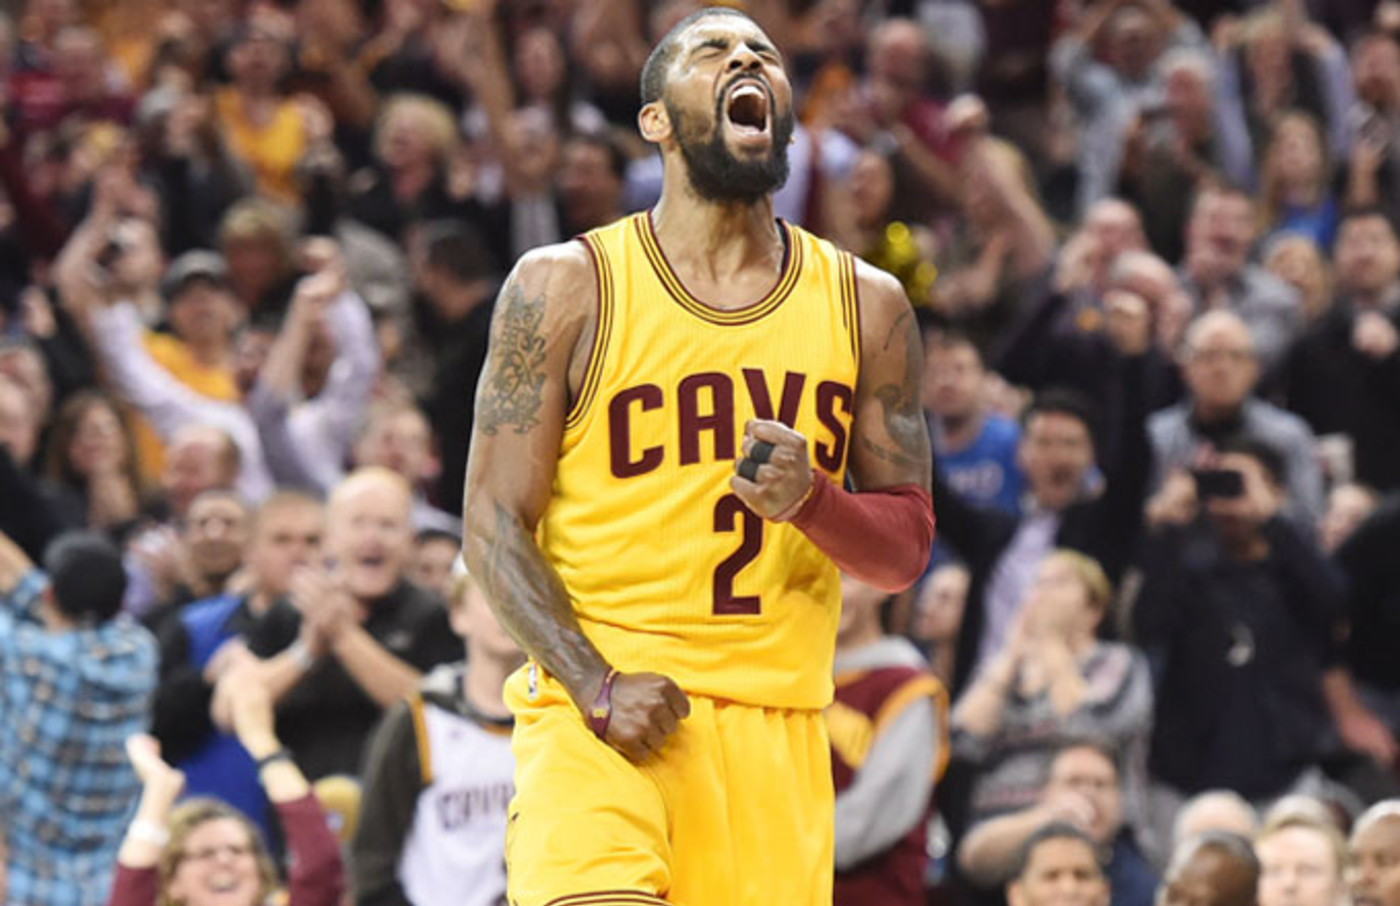 Kyrie Irving reacts after a play against the Wizards.